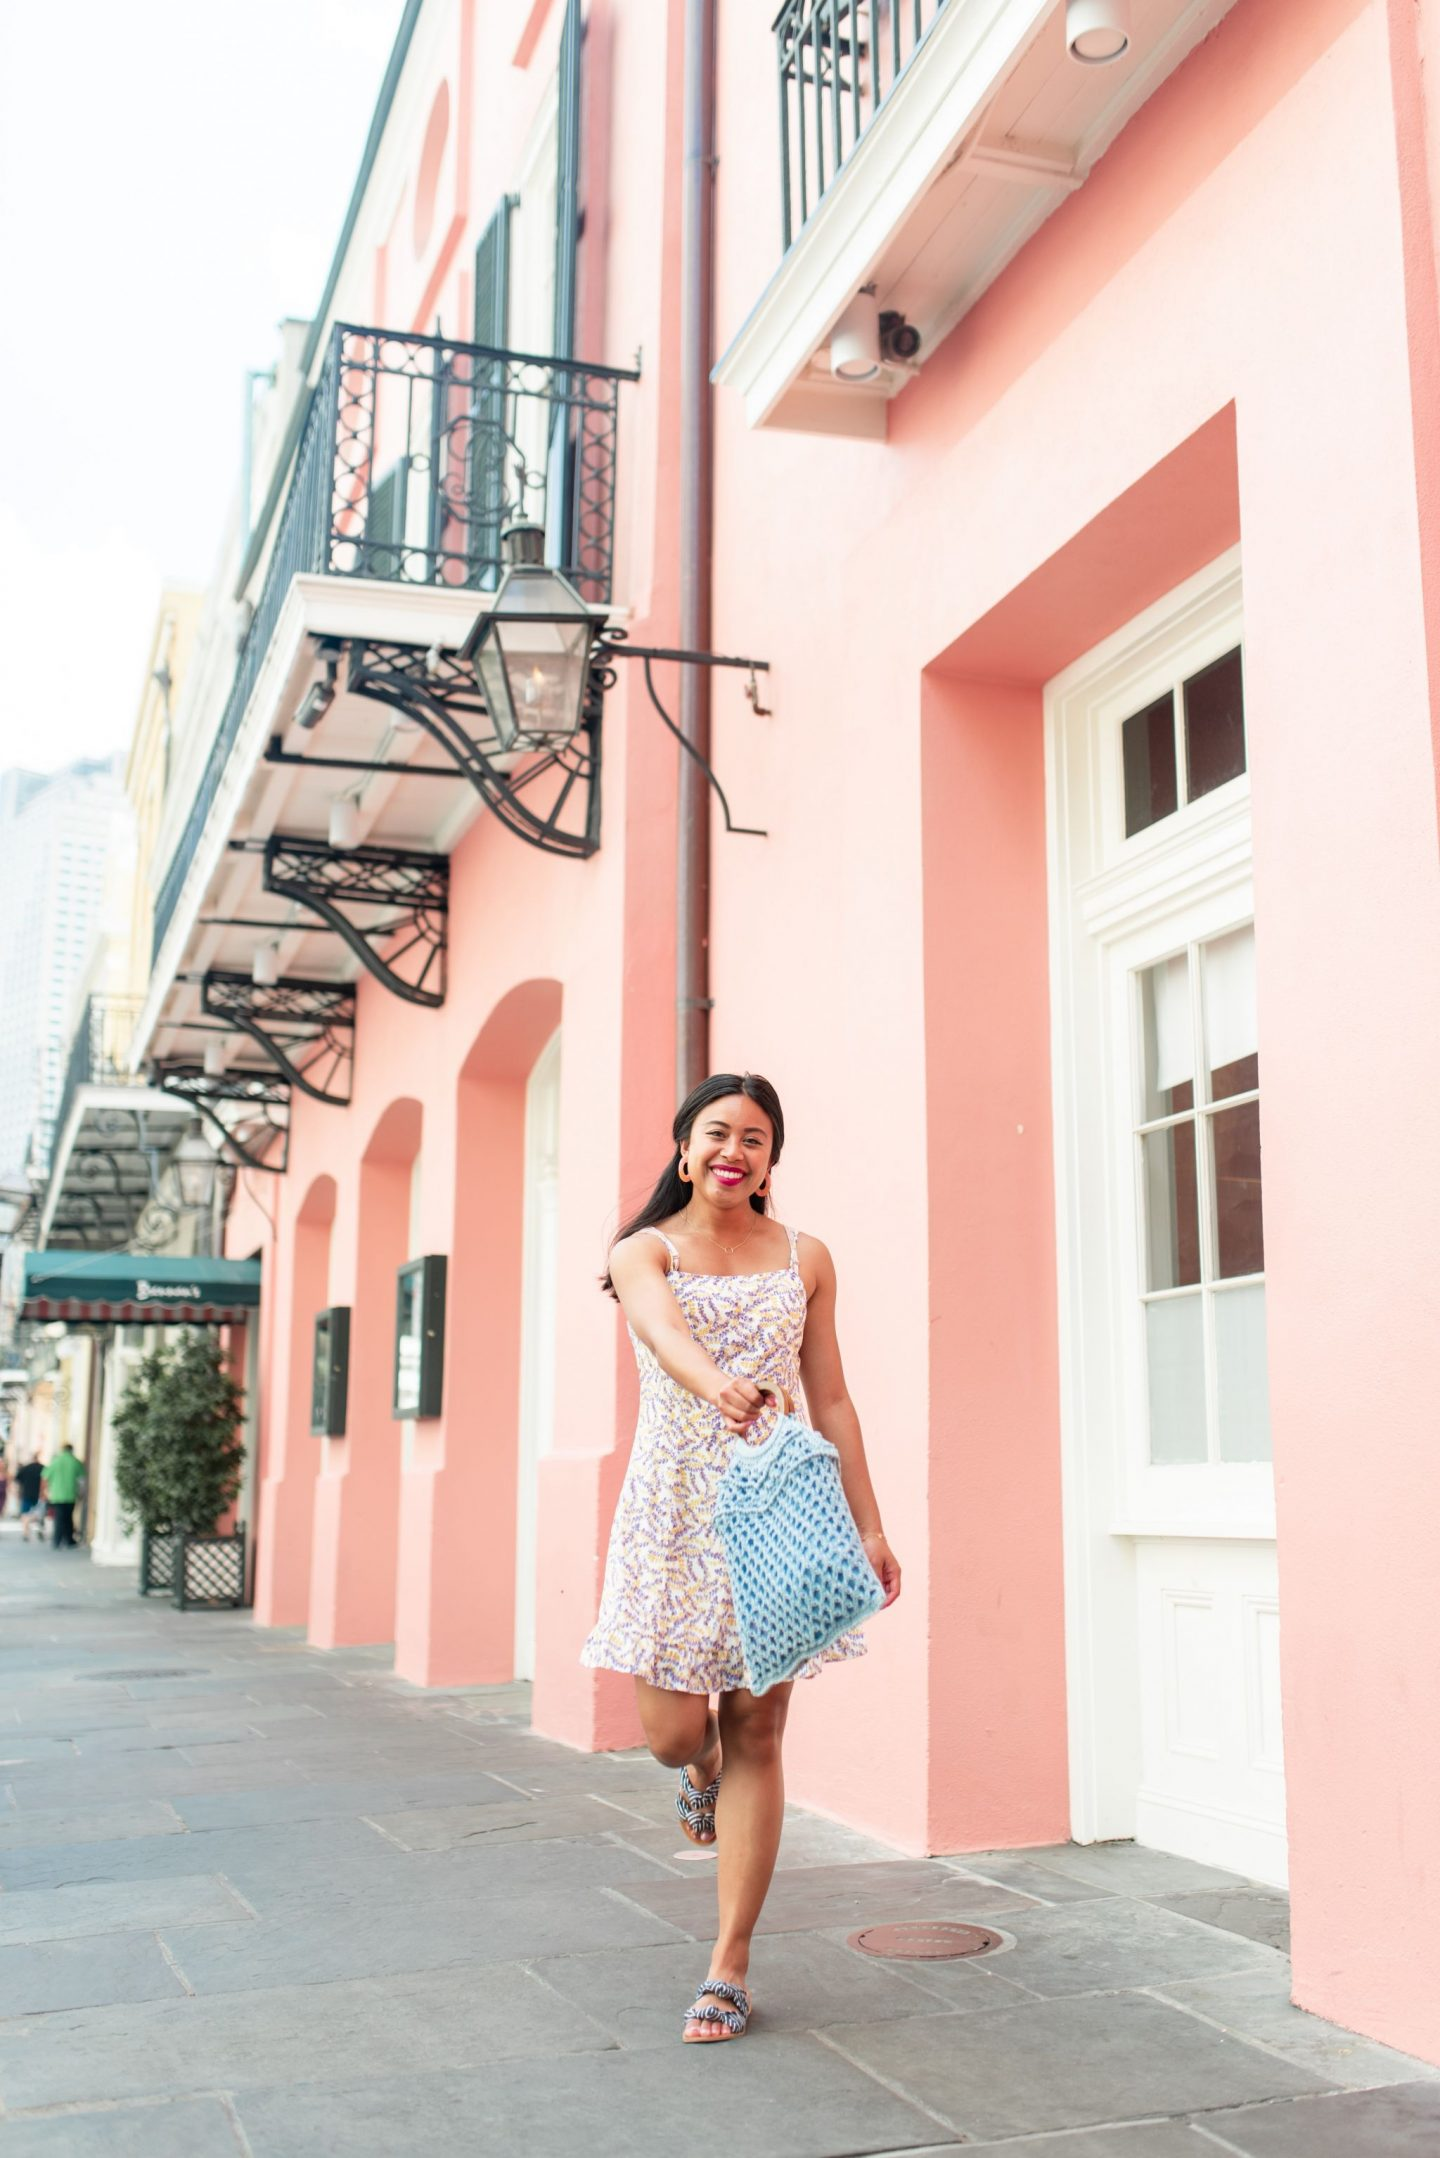 Brennans - Most instagrammable Places in Orleans – best photo spots in New Orleans – new Orleans street photography – Instagram worthy spots in new Orleans – NOLA Instagram spots